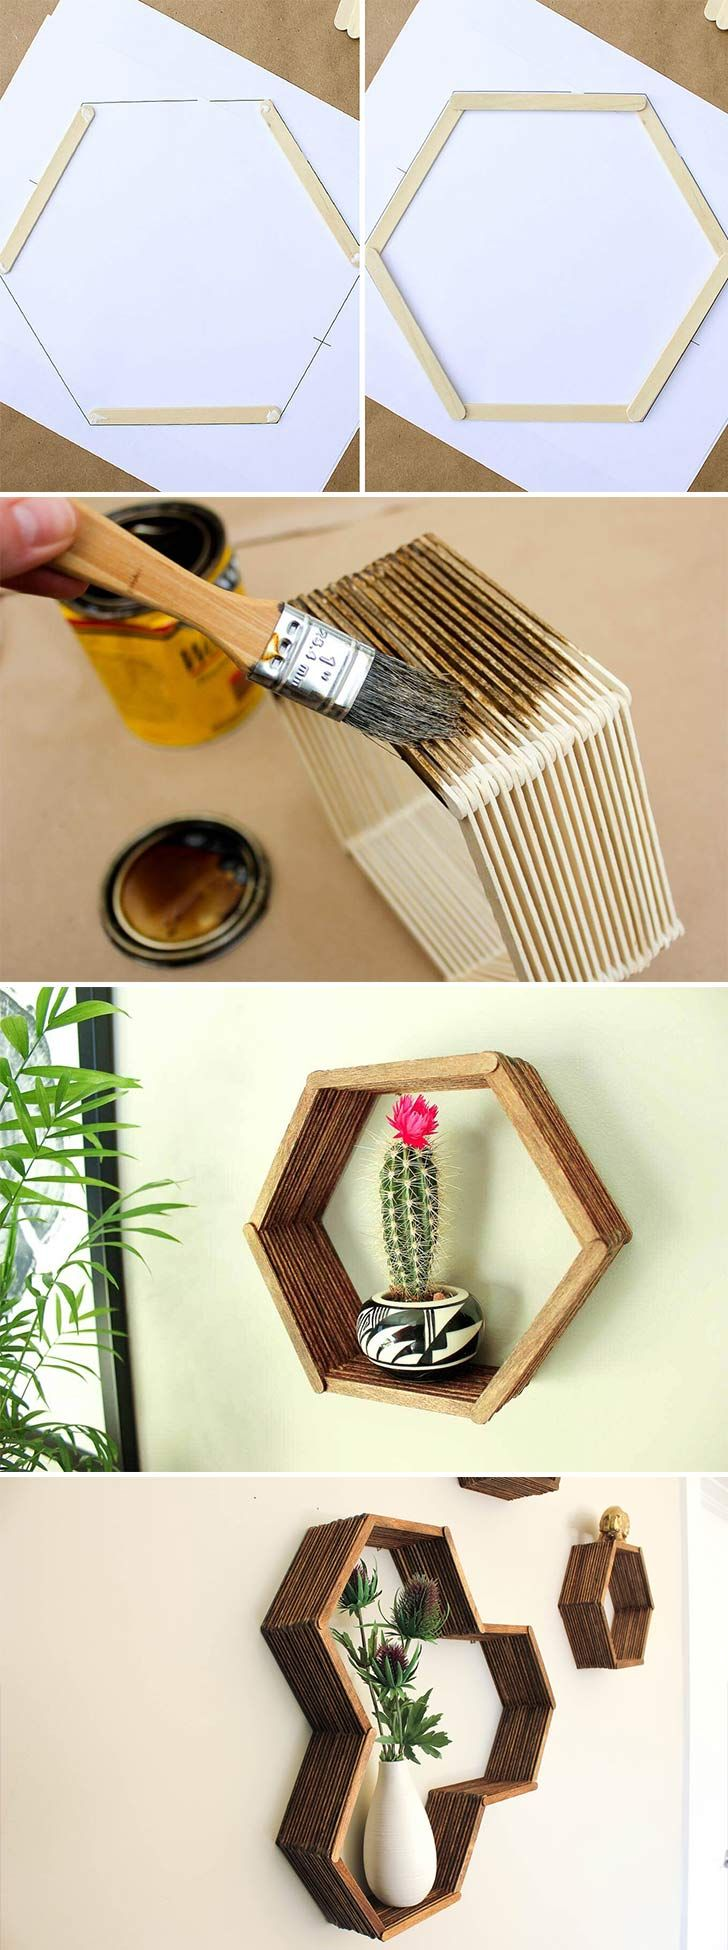 Do it yourself home decor crafts the for Home decor crafts